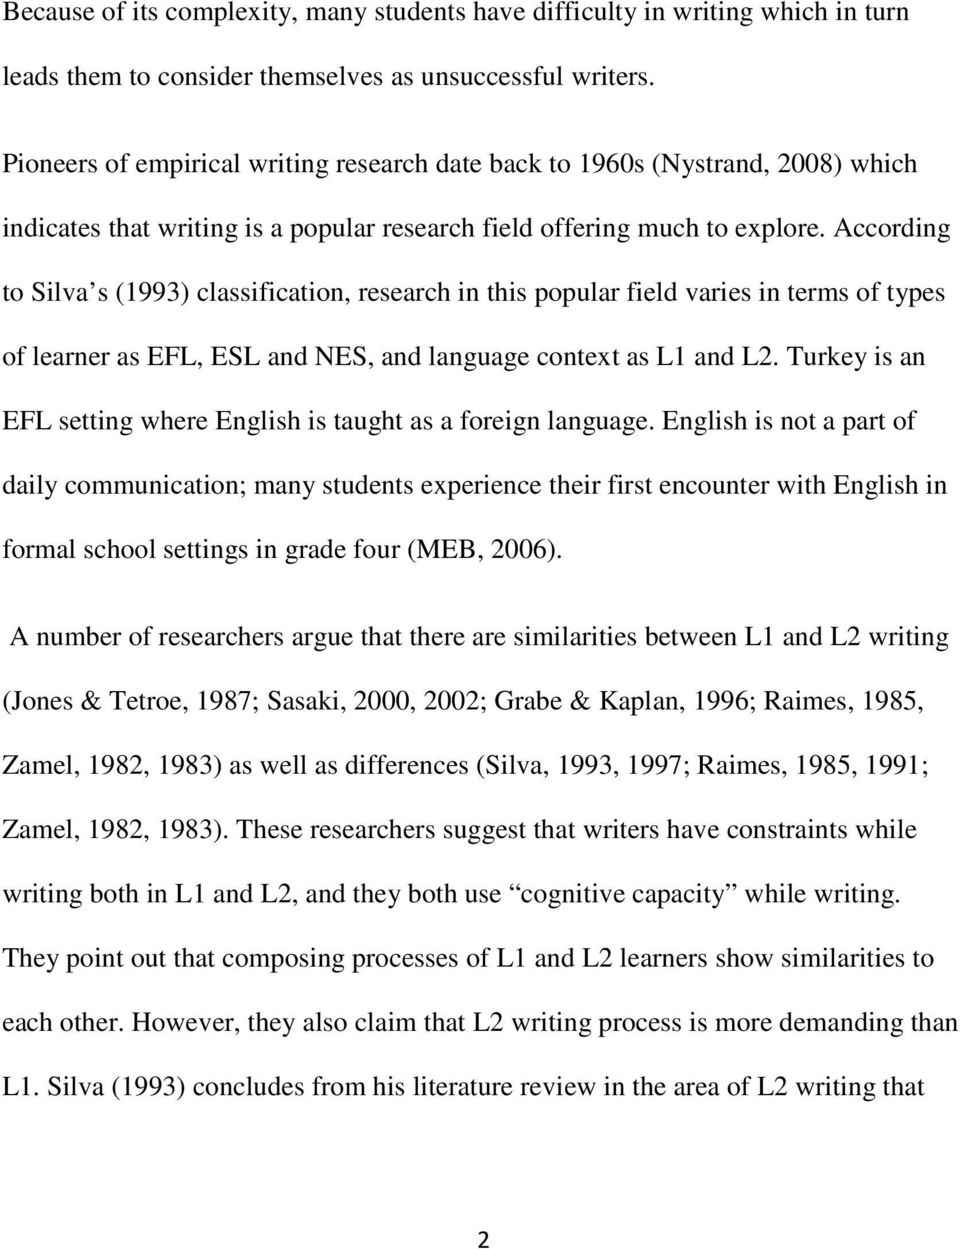 According to Silva s (1993) classification, research in this popular field varies in terms of types of learner as EFL, ESL and NES, and language context as L1 and L2.